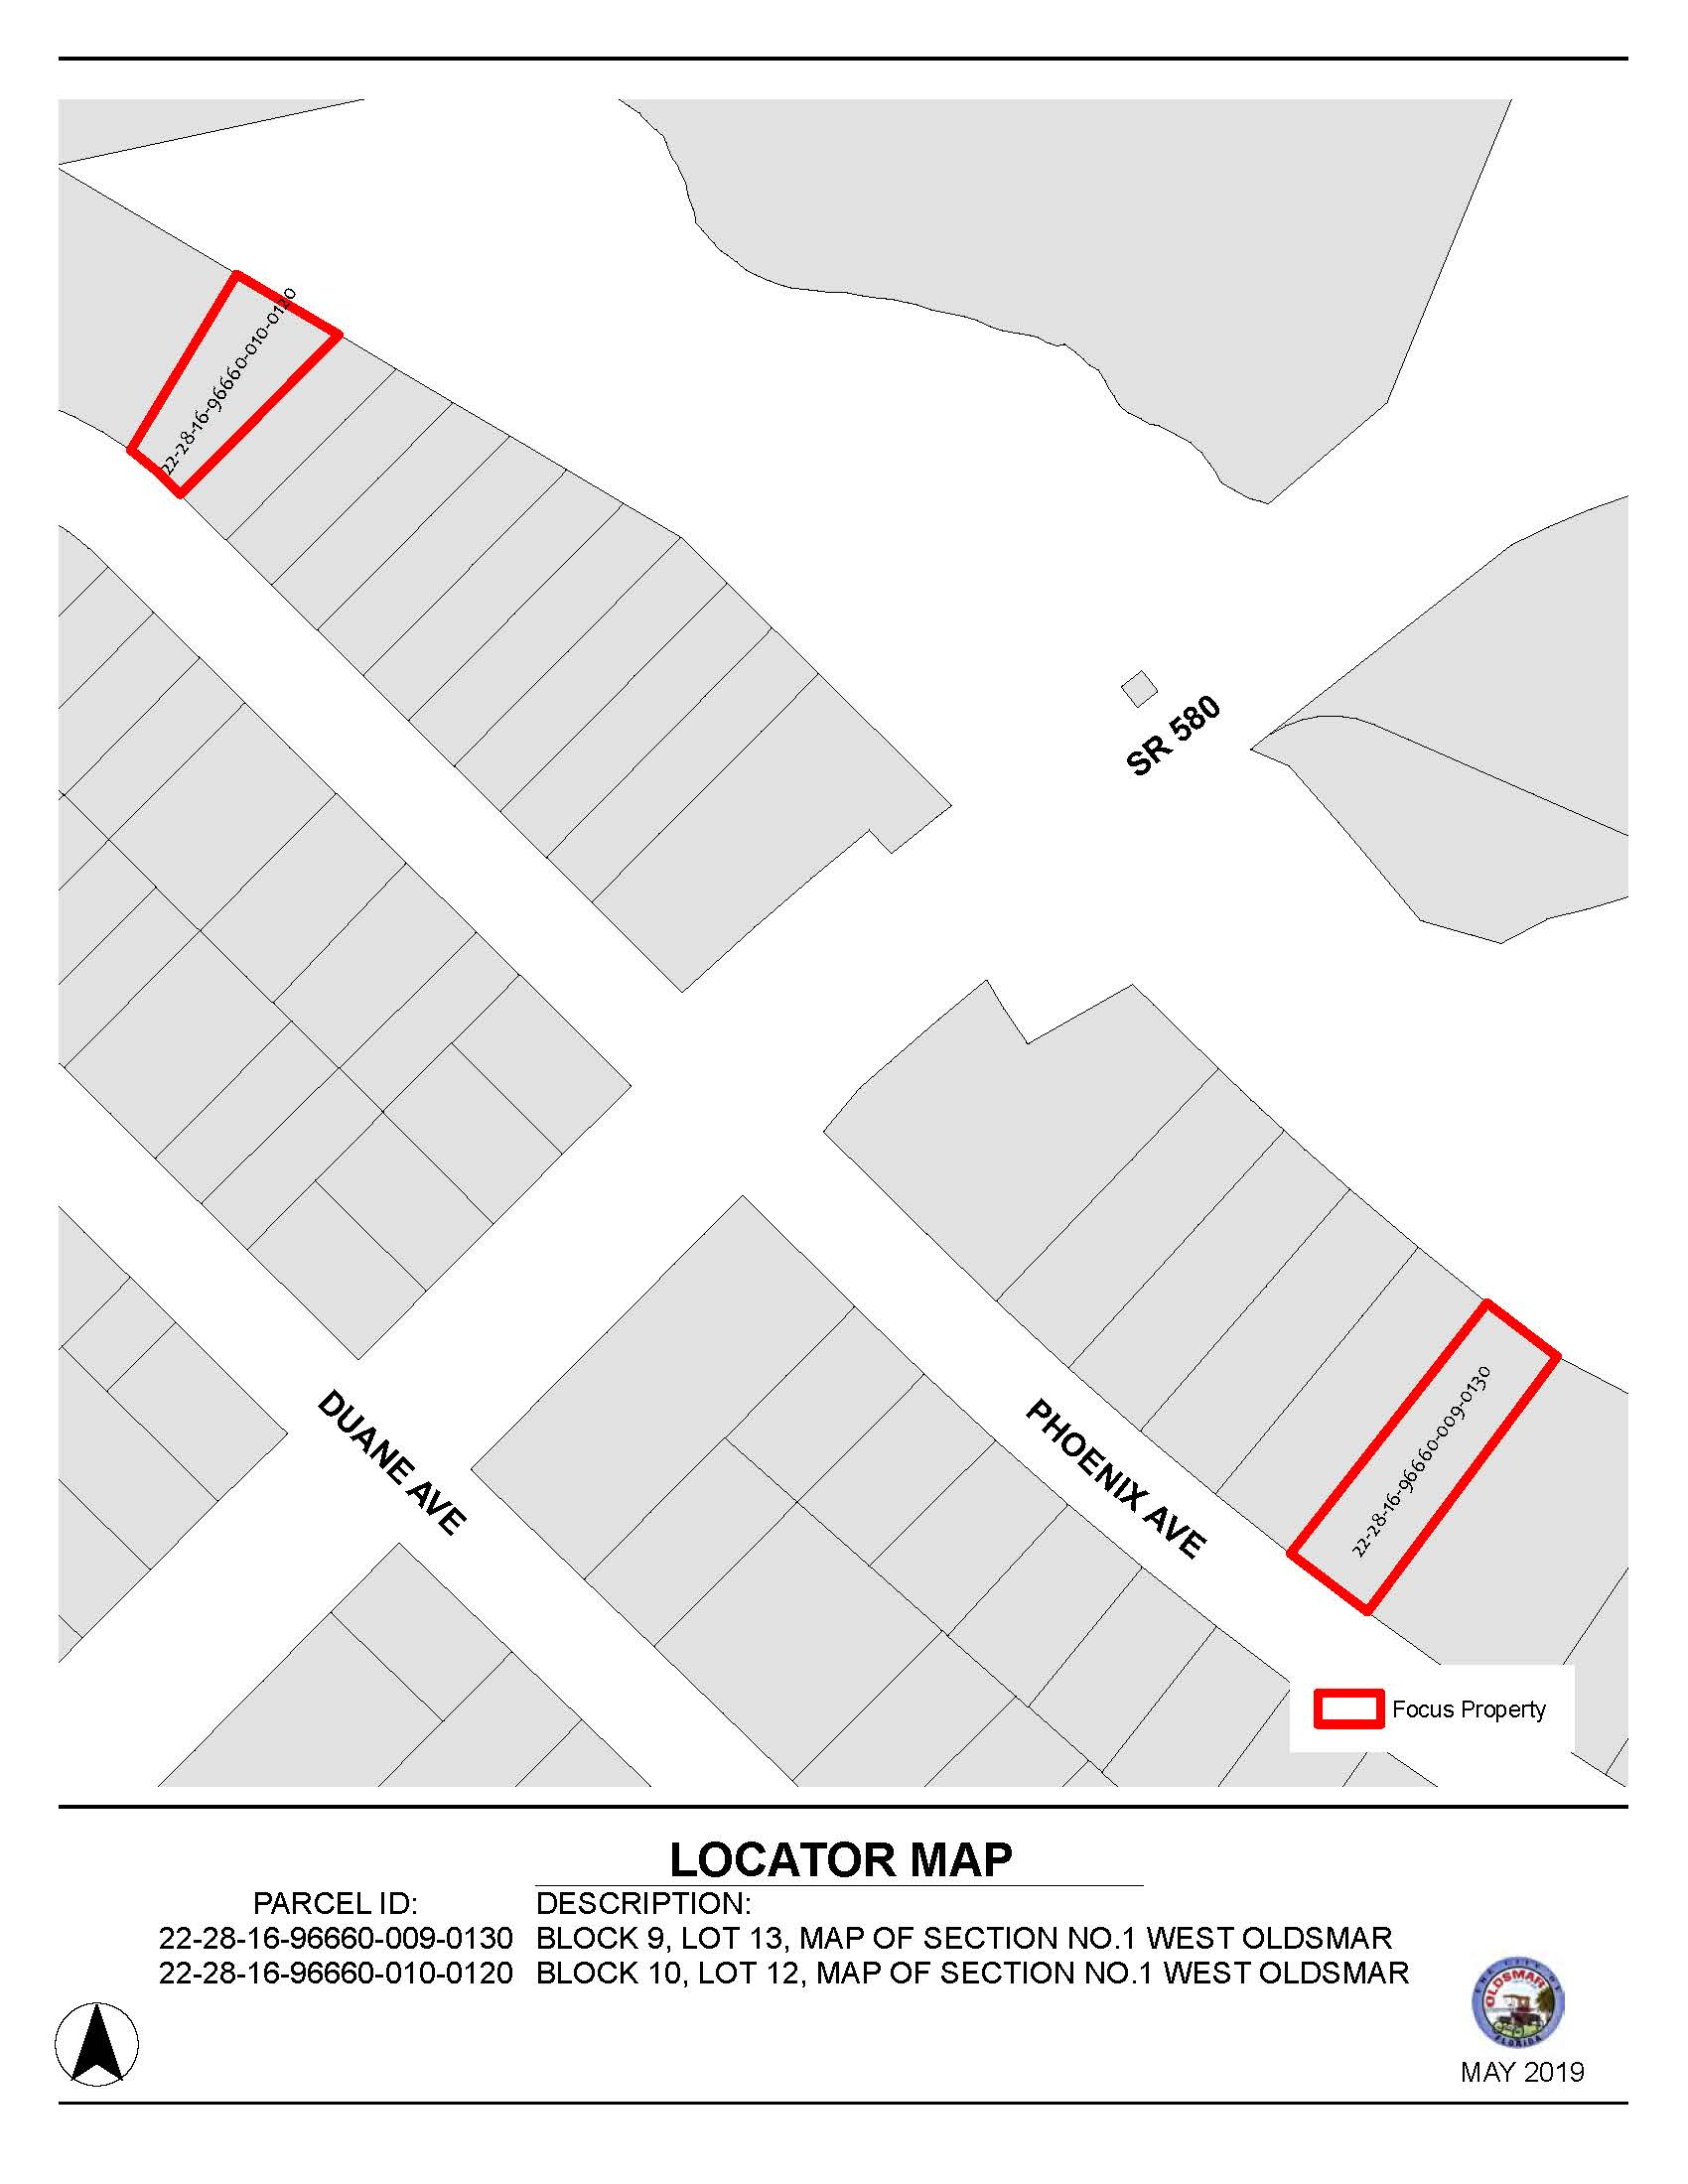 Ordinance 201901 and 201902 Combined Locator Maps for June 18 2019 Public hearing notice